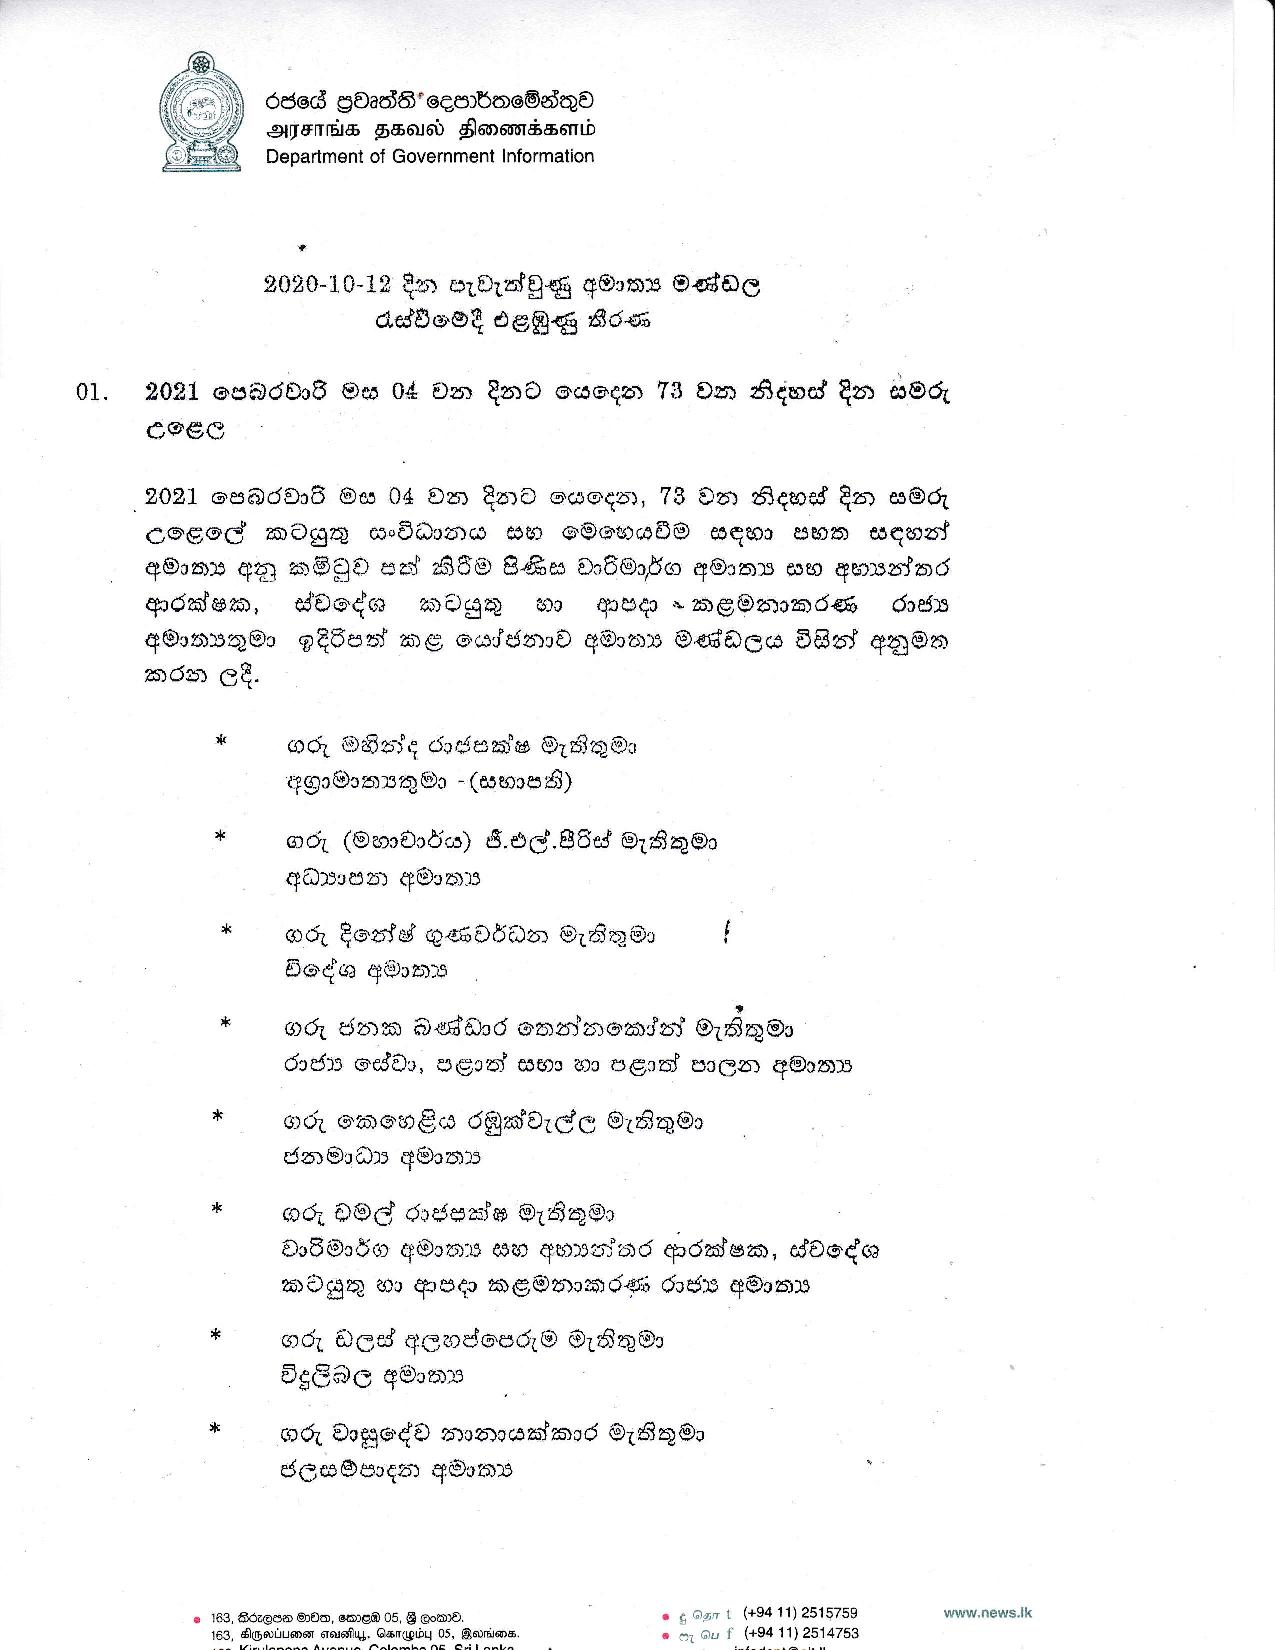 Cabinet Decision on 12.10.2020 page 001